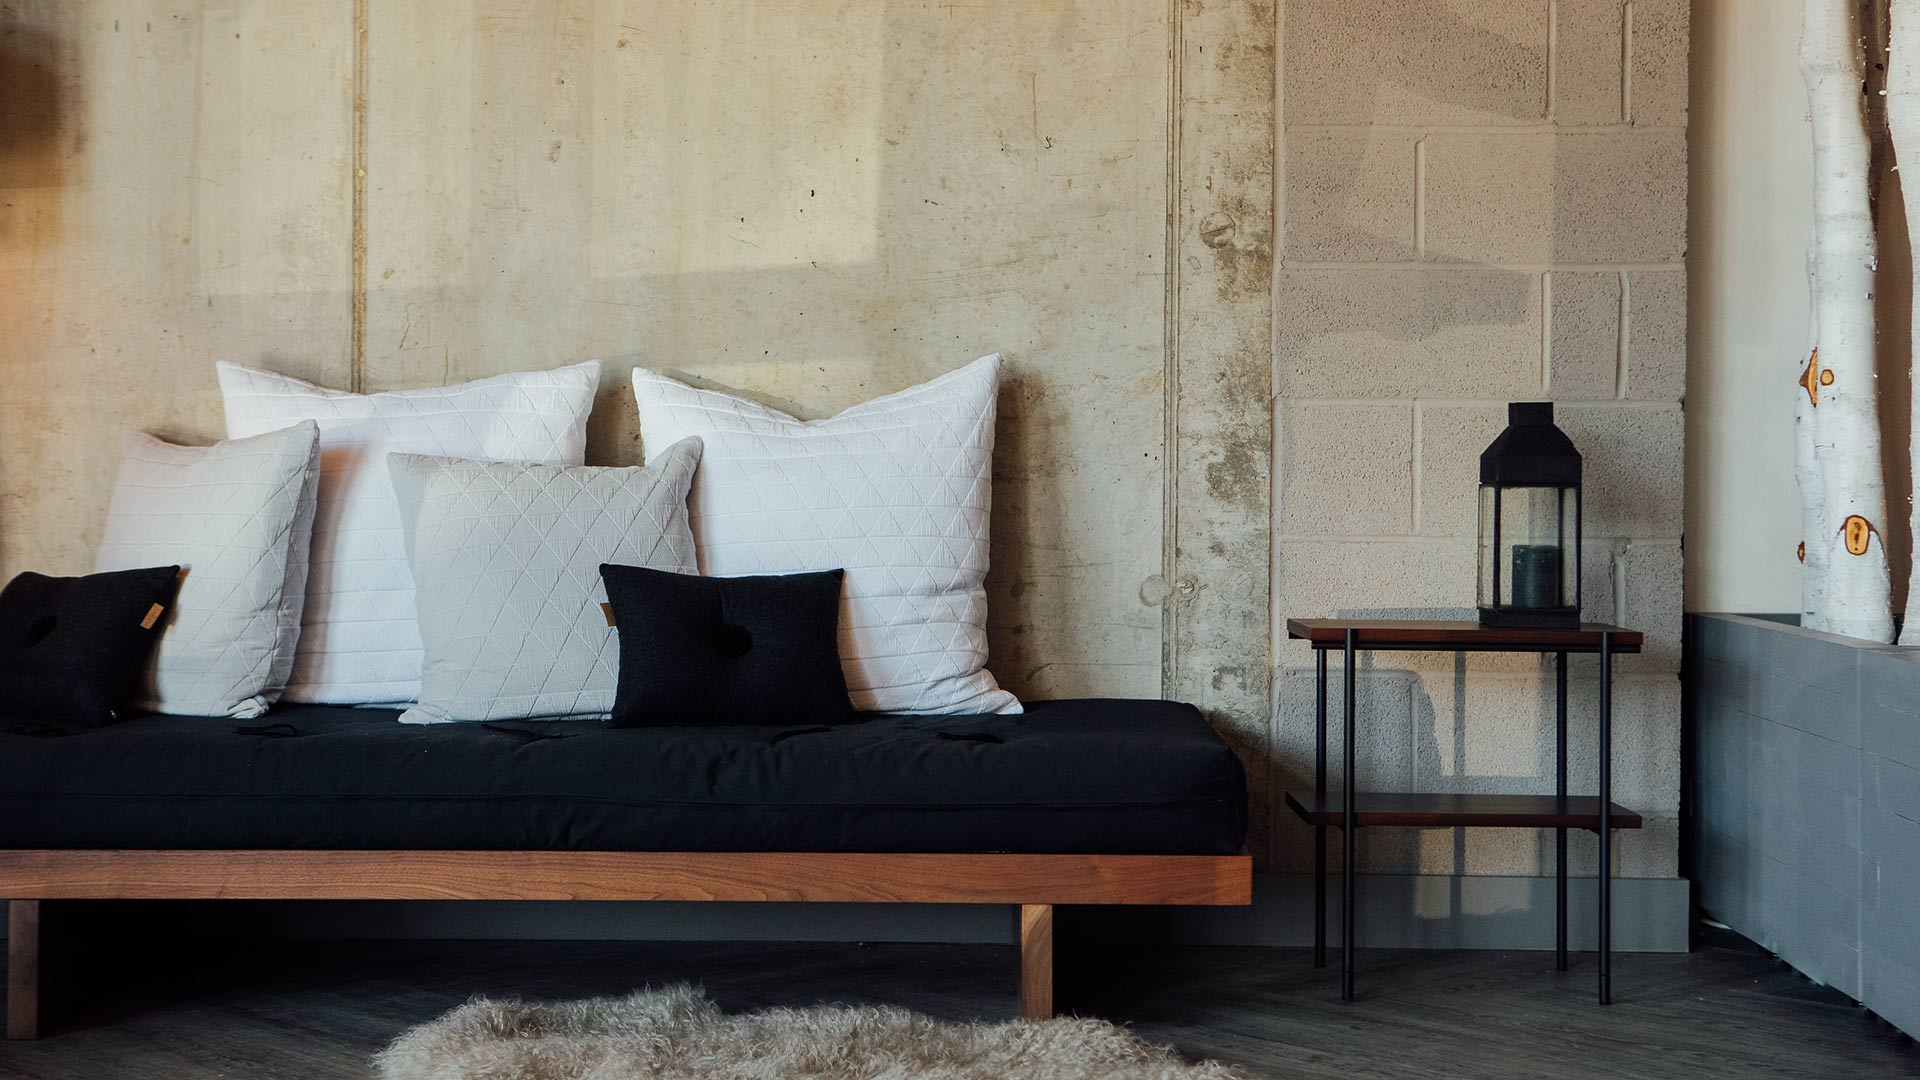 Kyoto spare bed or Daybed, a solid wood frame in Walnut with futon mattress